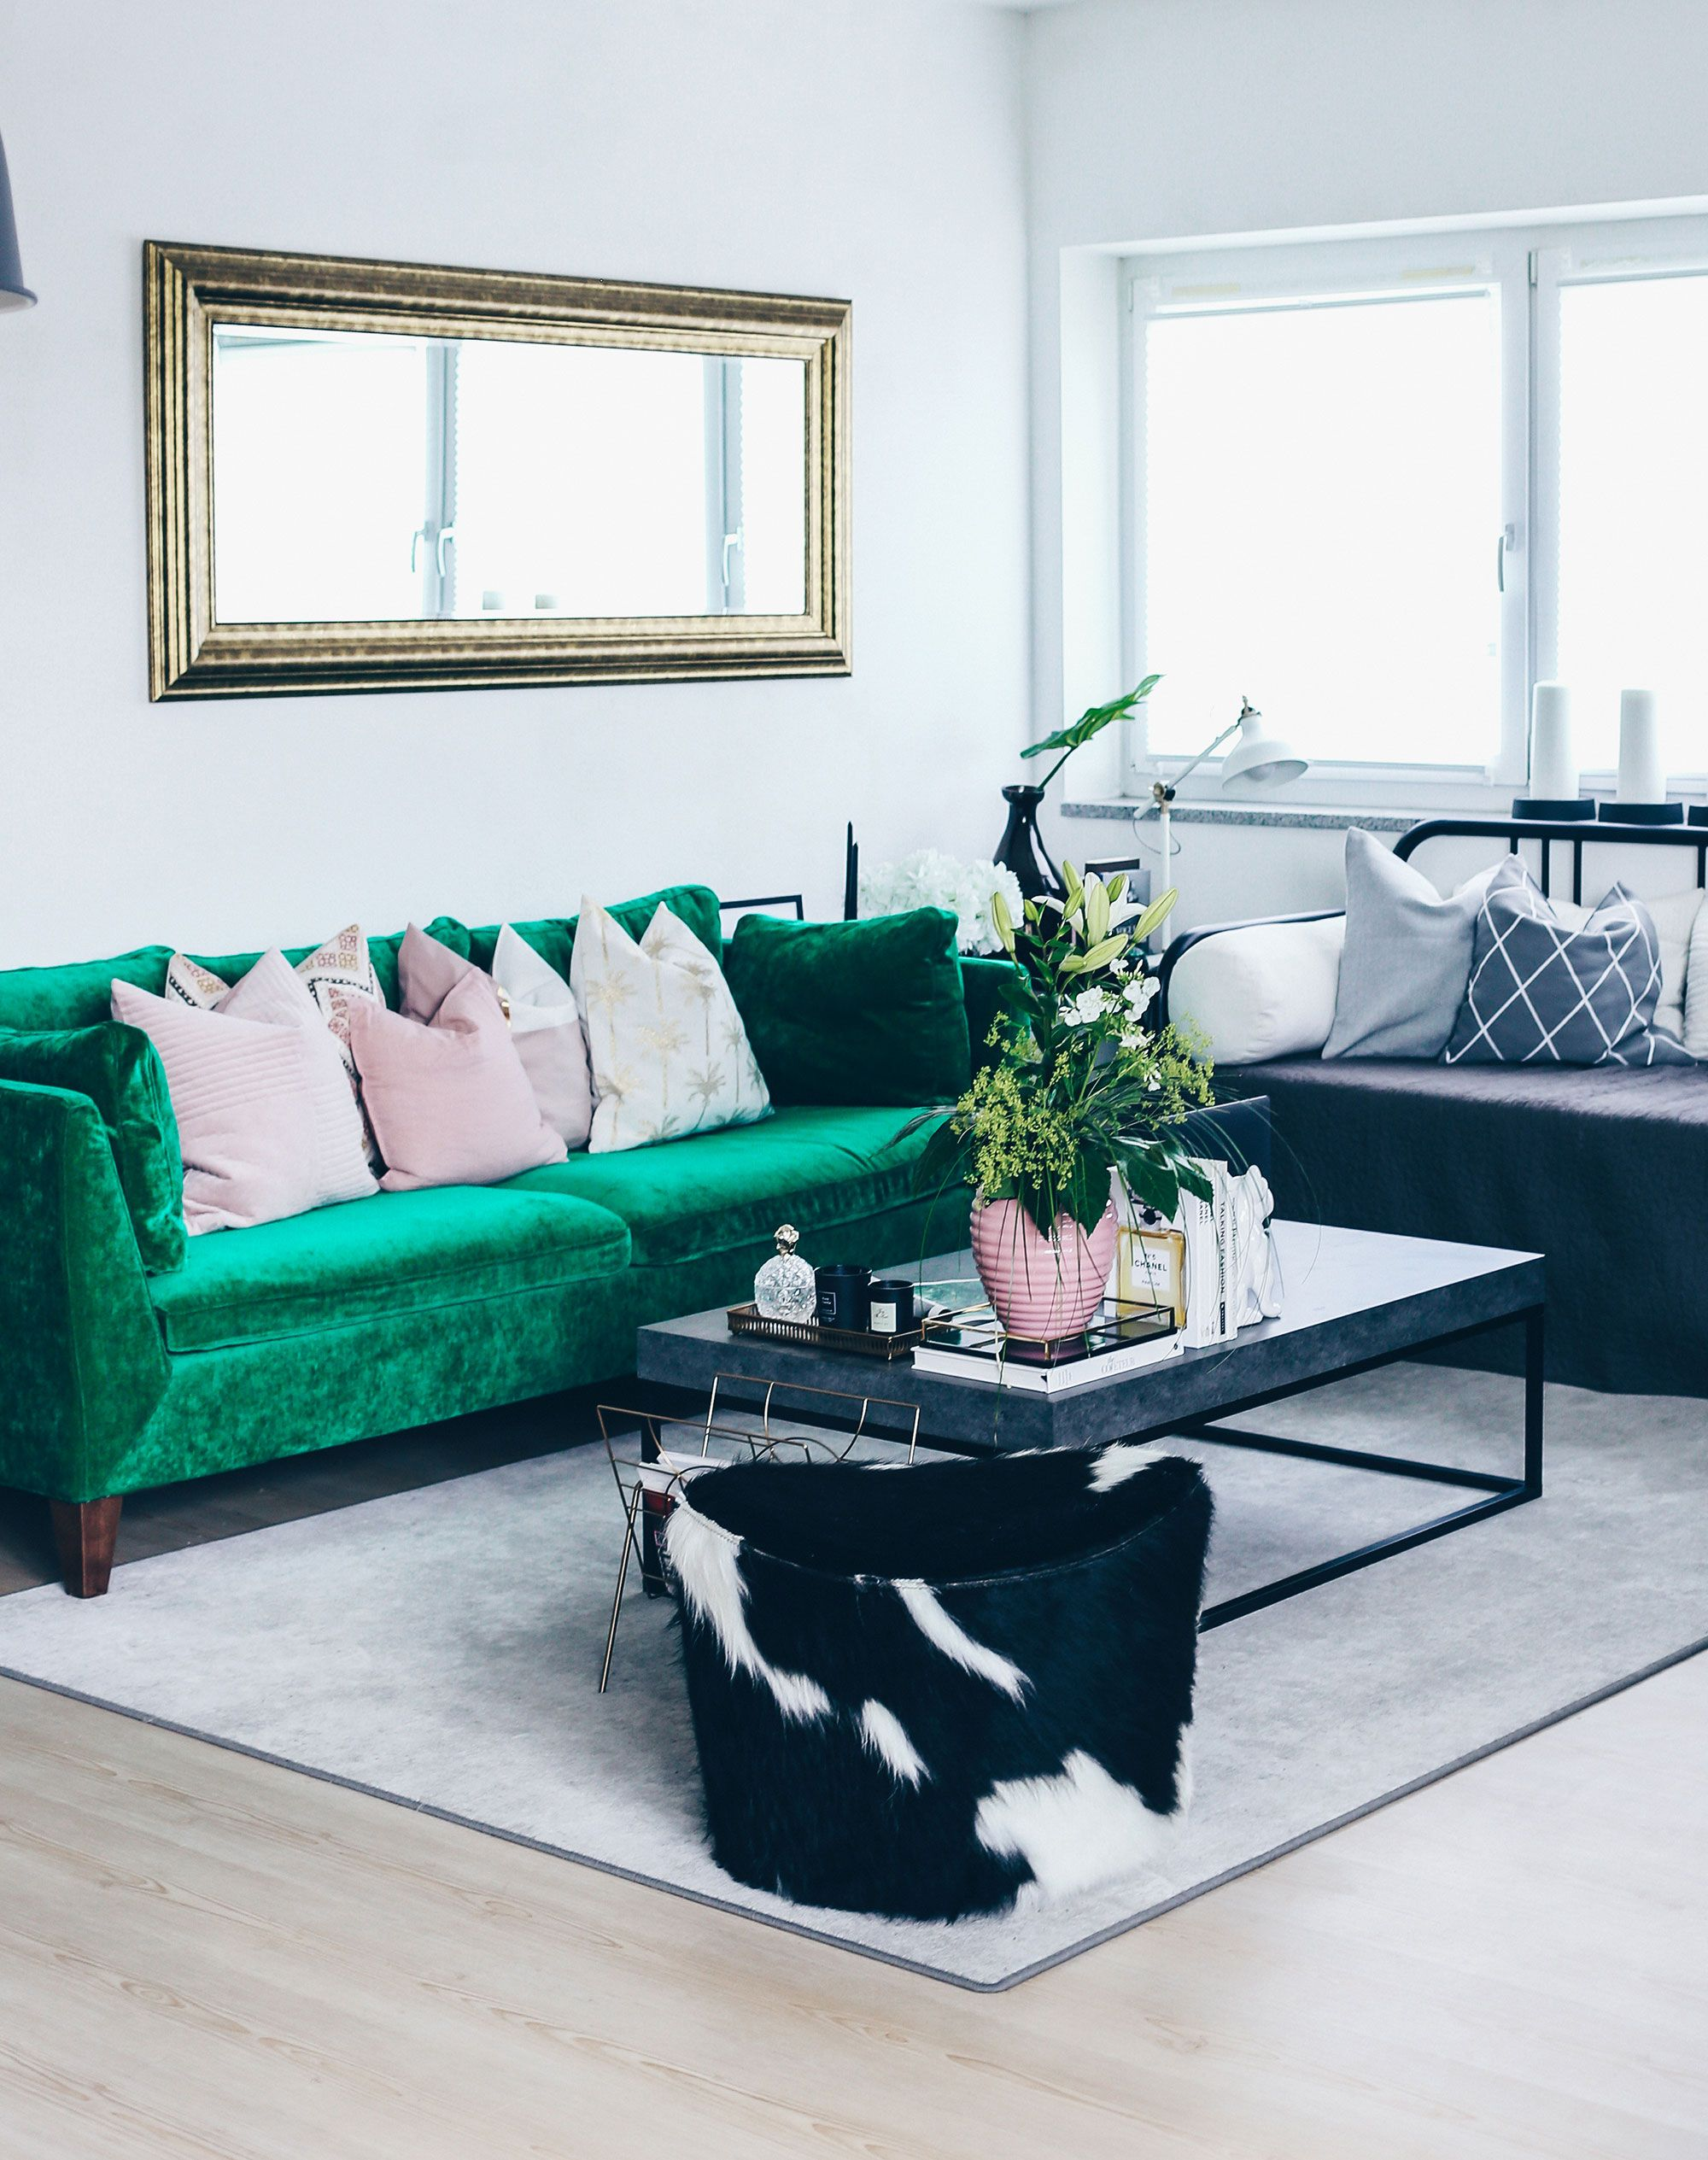 blogger who is mocca updated her ikea stockholm sofa with. Black Bedroom Furniture Sets. Home Design Ideas